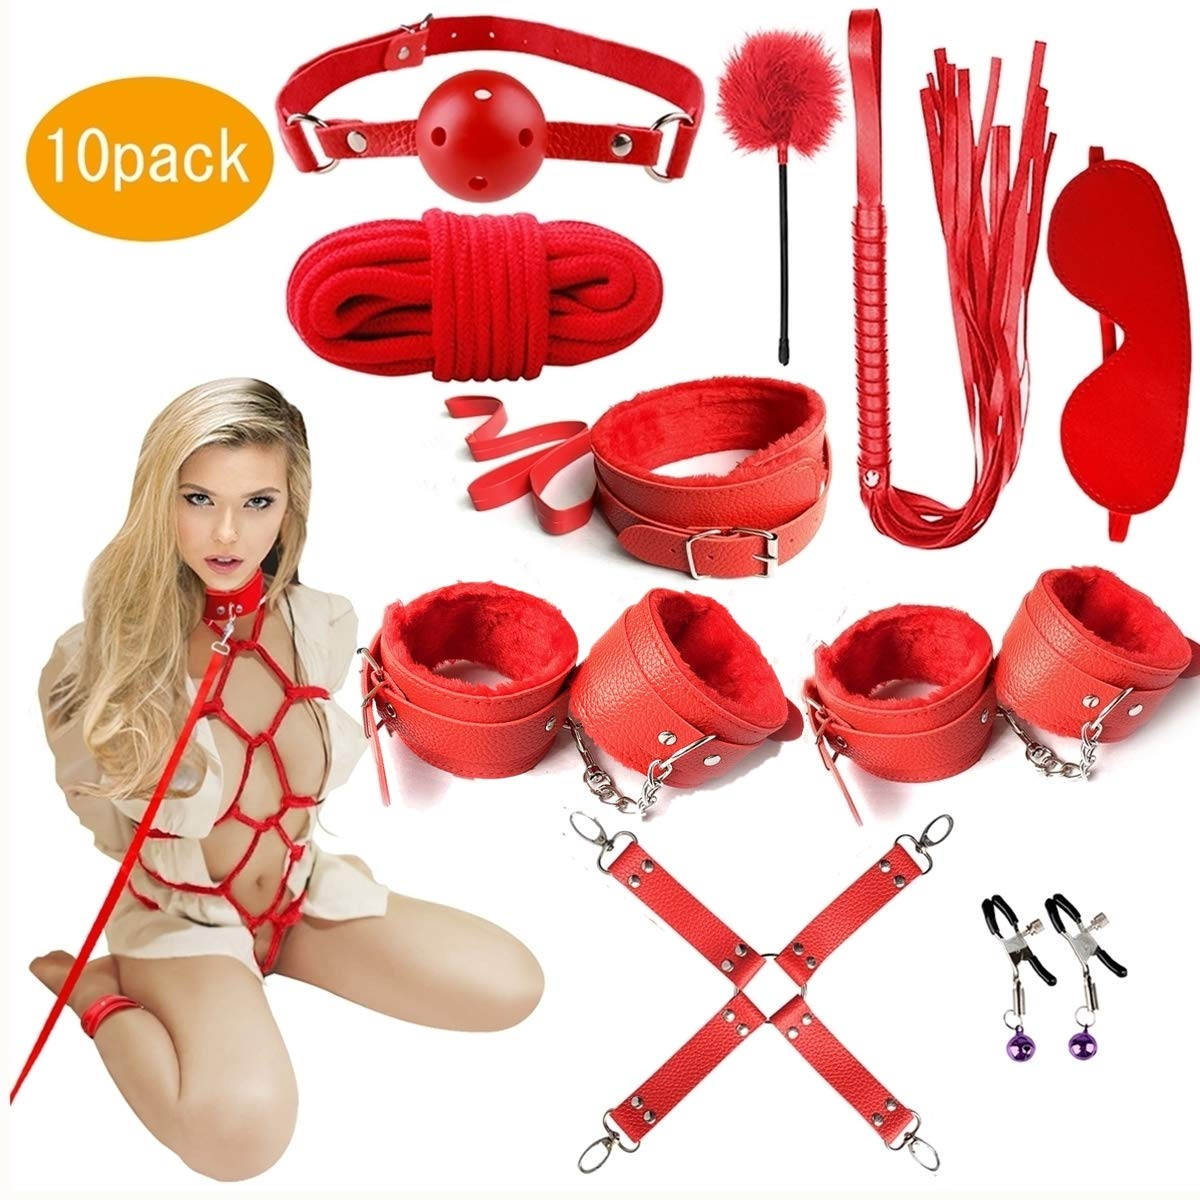 BDSM Restraints Sex Toys Bondage Restraints Set Fetish Bed Restraints Kits for Beginners SM Adult Games Safe Cosplay BDSM Cuffs Nipple Clamps Flogger Ball Gag Blindfold Rope Red 10 by MISSTU